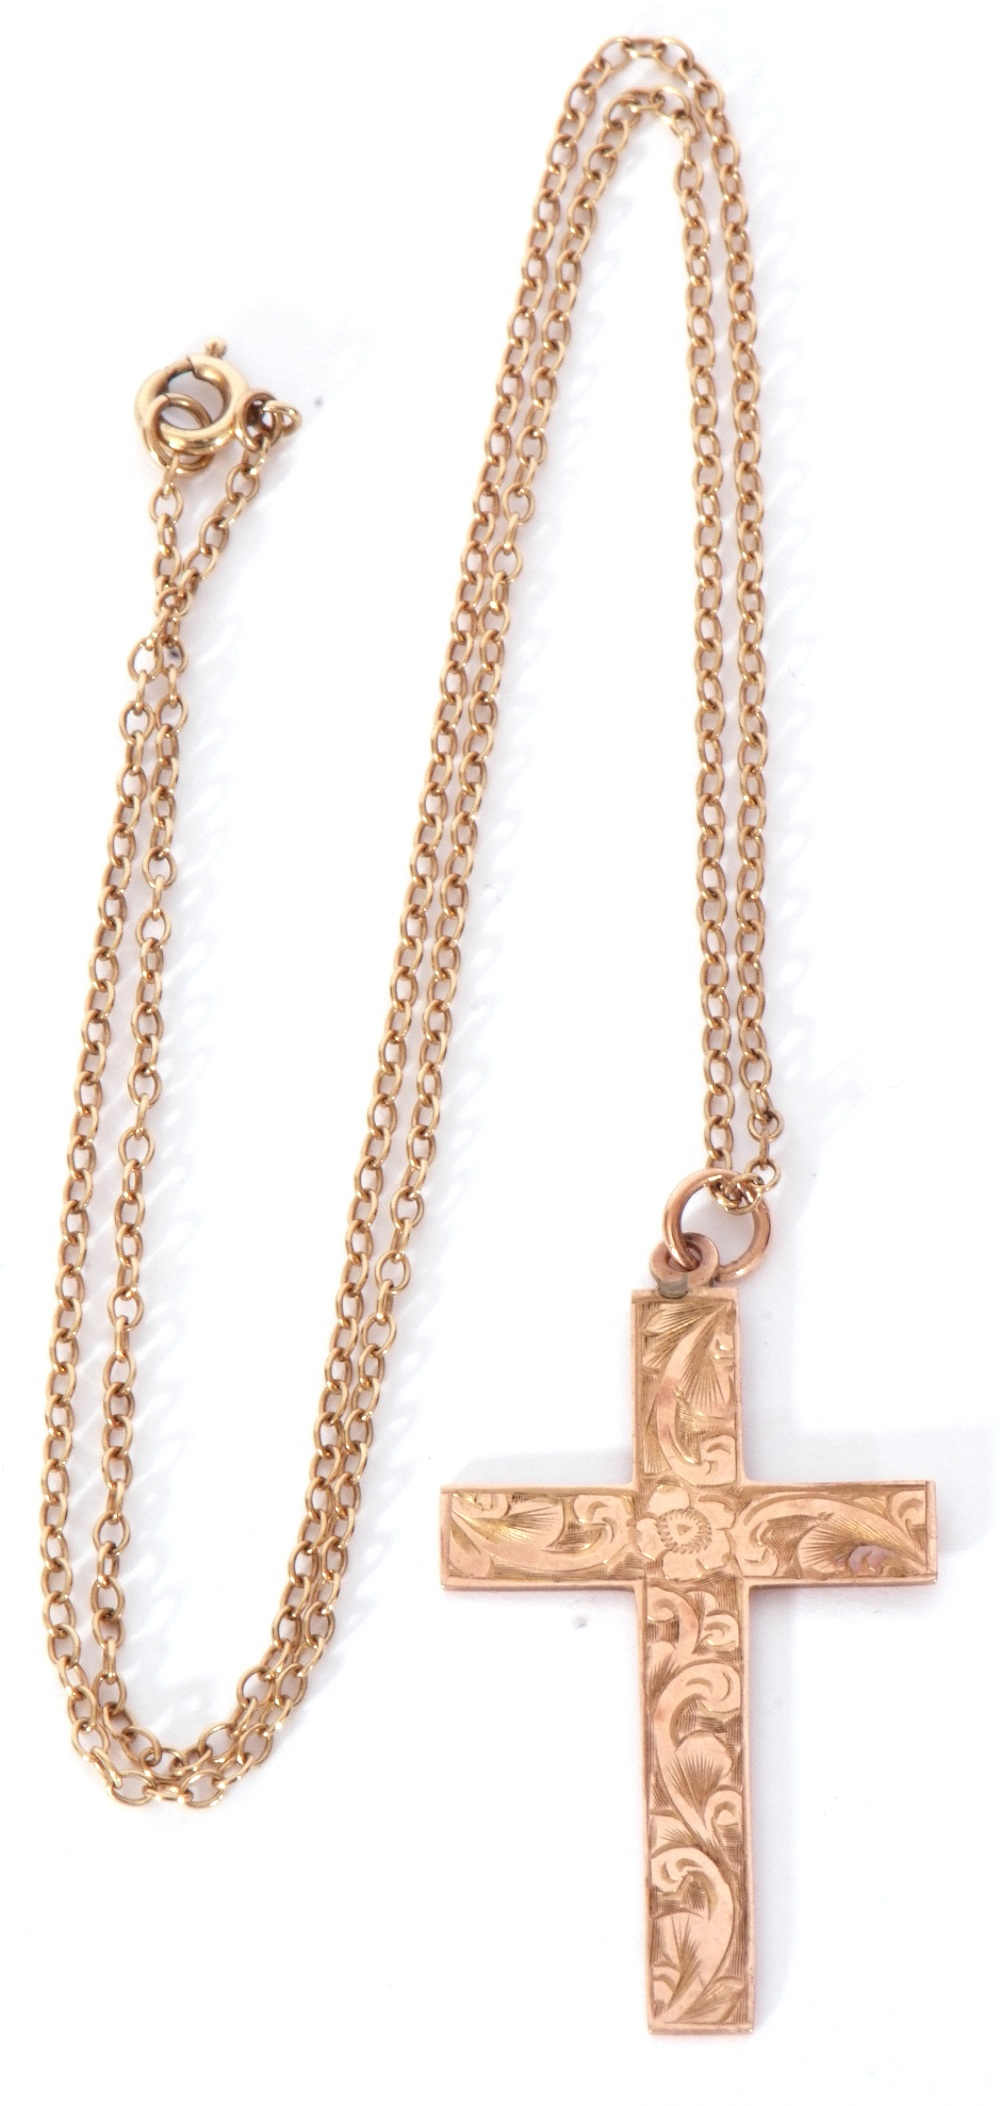 9ct stamped cross pendant, chased and engraved scroll decorated front, 35 x 22mm - Image 2 of 5